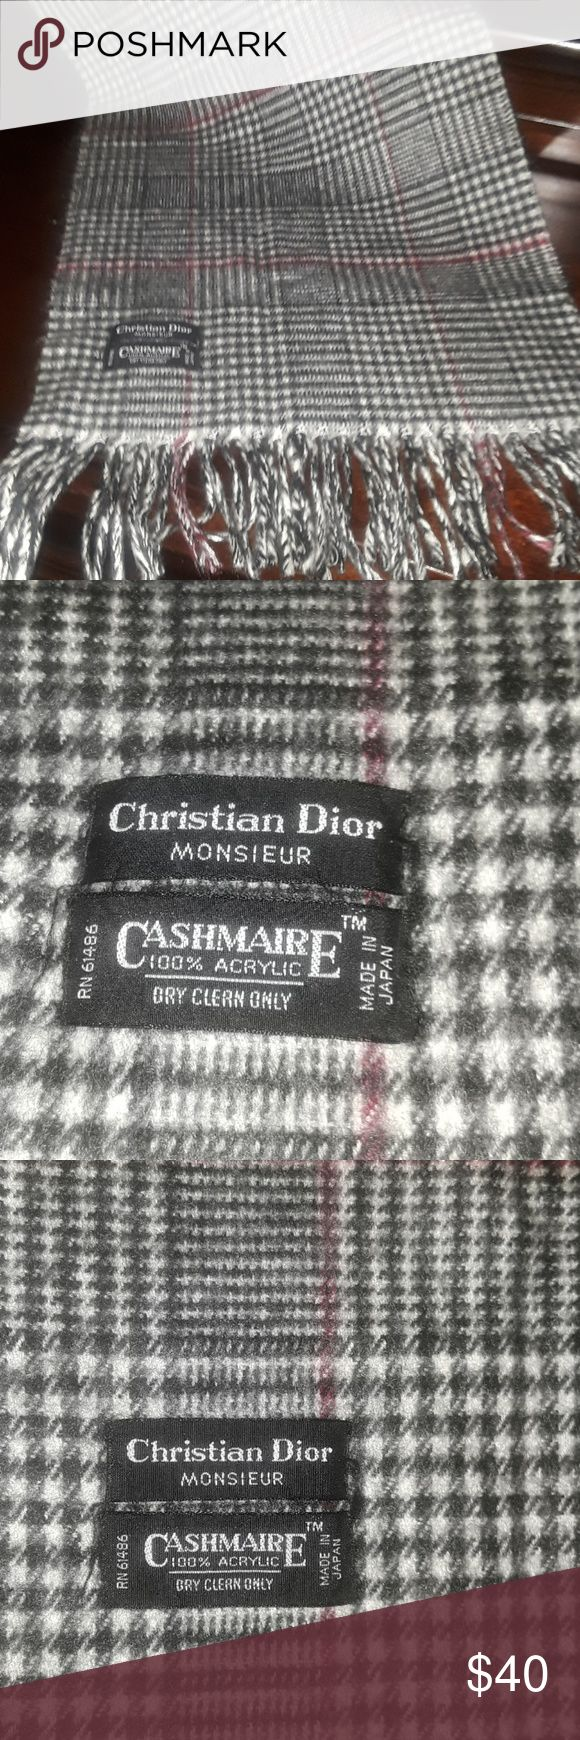 Christian Dior Monsieur Scarve Authentic and very nicely done by Dior!  Made in Japan. Christian Dior Accessories Scarves & Wraps